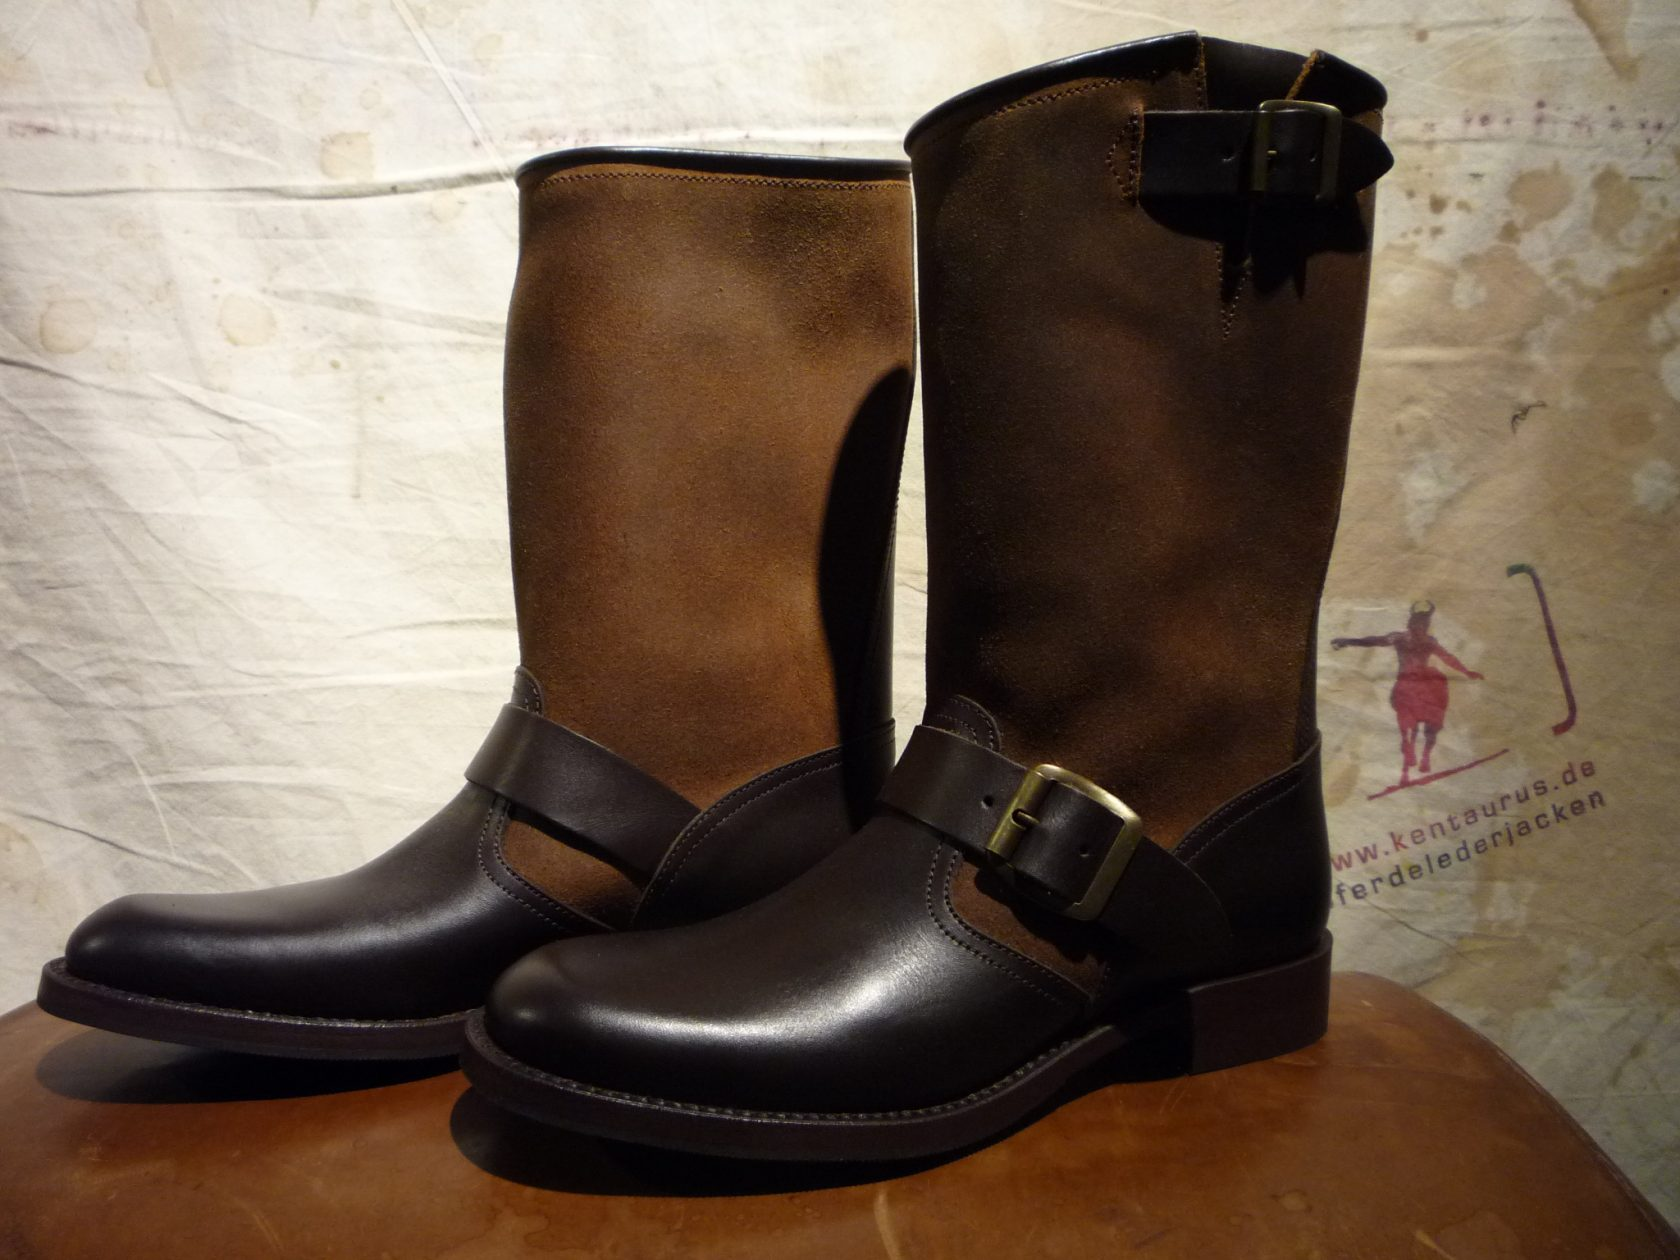 Penelope Chilvers Short Utility Boot